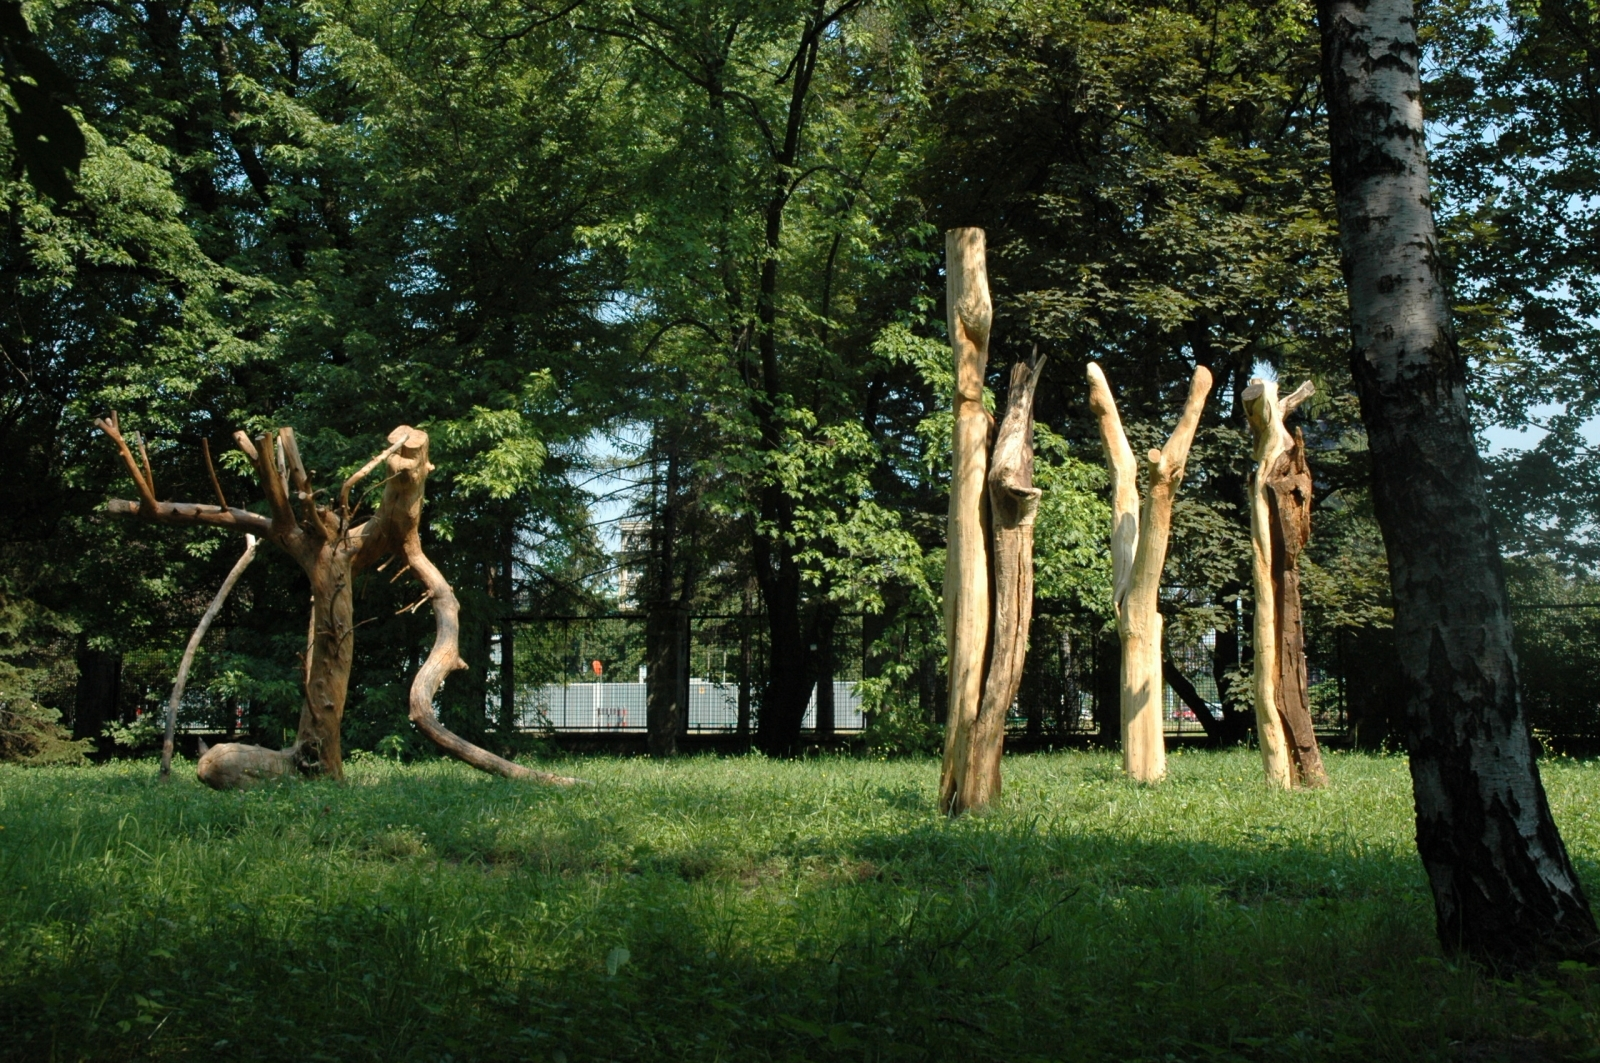 Nature's Body, 2006, dimensions variable (height 3.5 meters), Apple Wood, Botanic Gardens, Krakow, Poland